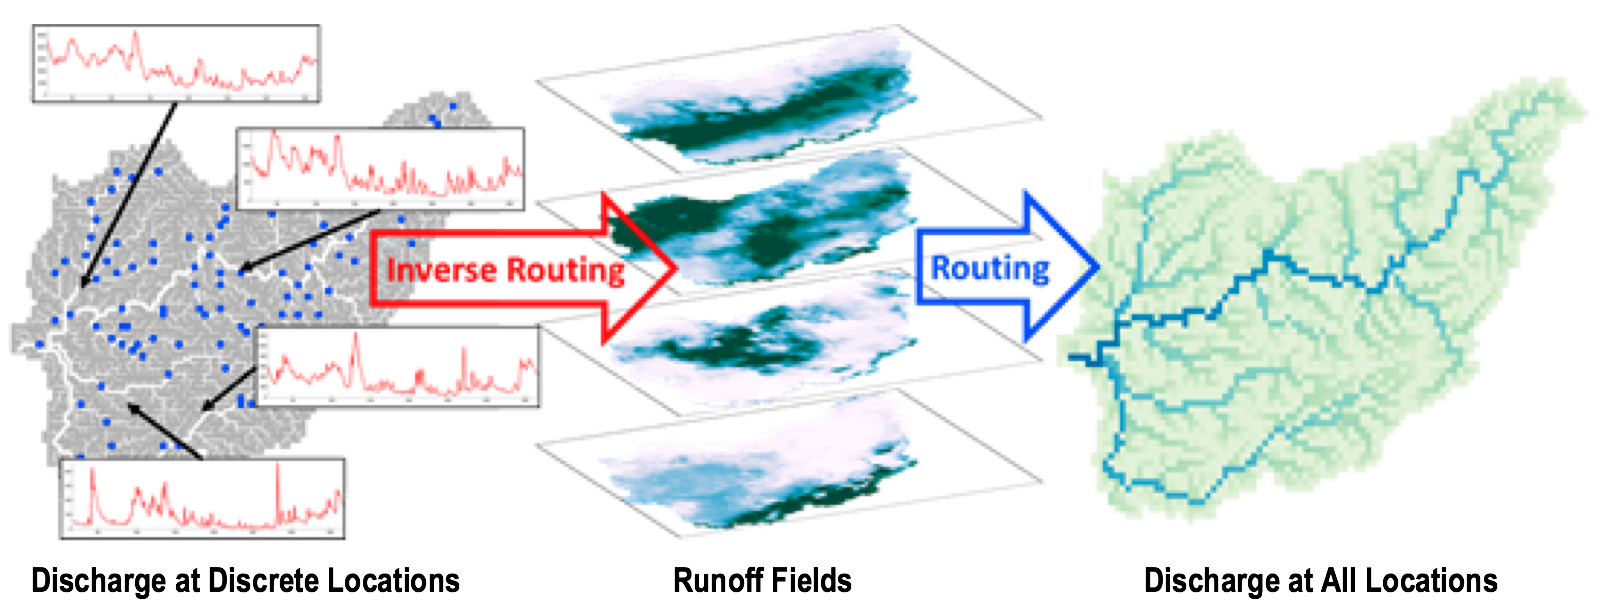 Fixed-Interval Smoother technique for deriving runoff fields from discrete observations and constructing discharge at all locations within a catchment